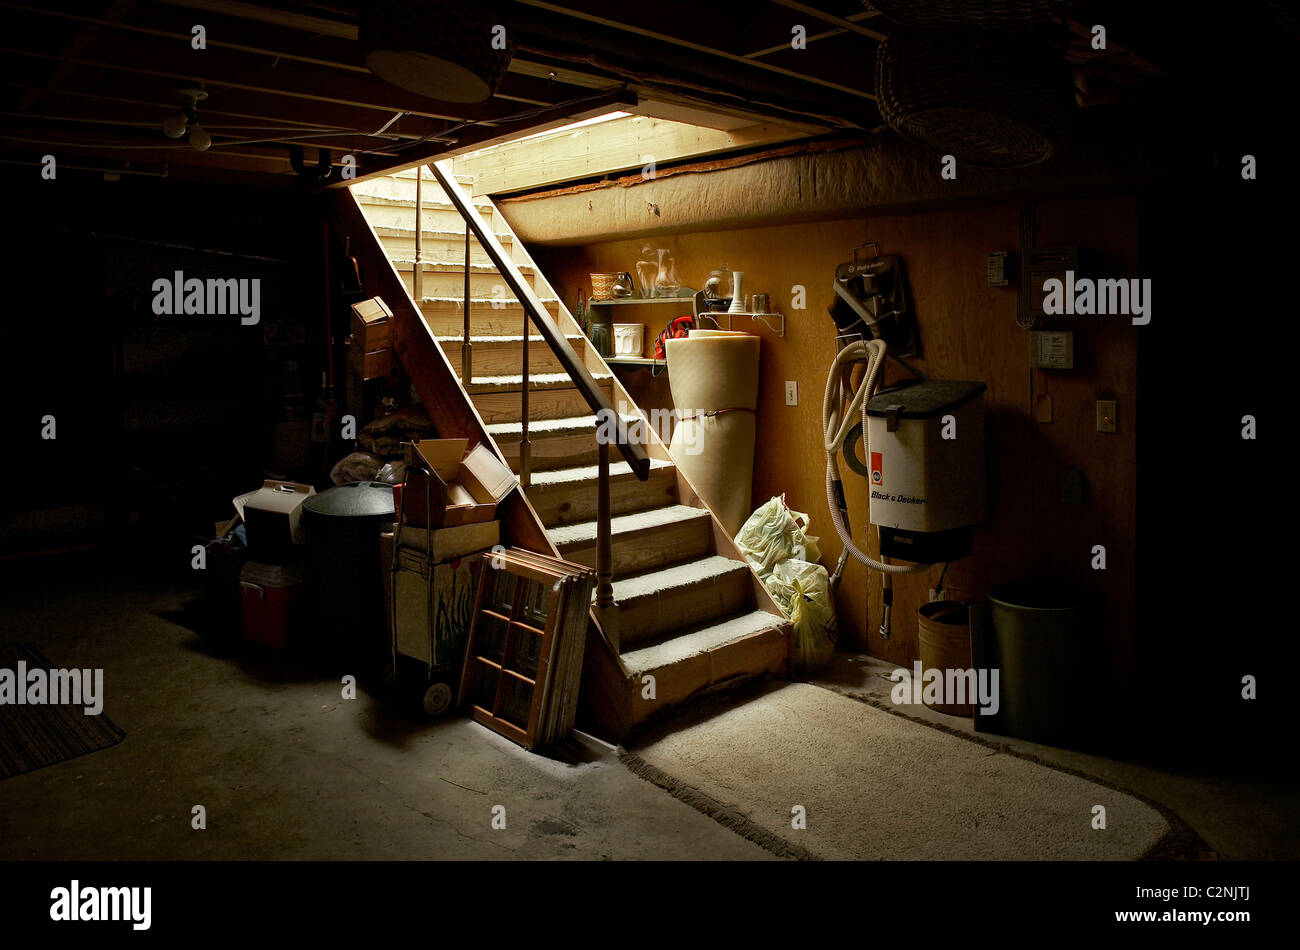 Down Basement Stairs Lighting: Spooky Stairs Stock Photos & Spooky Stairs Stock Images